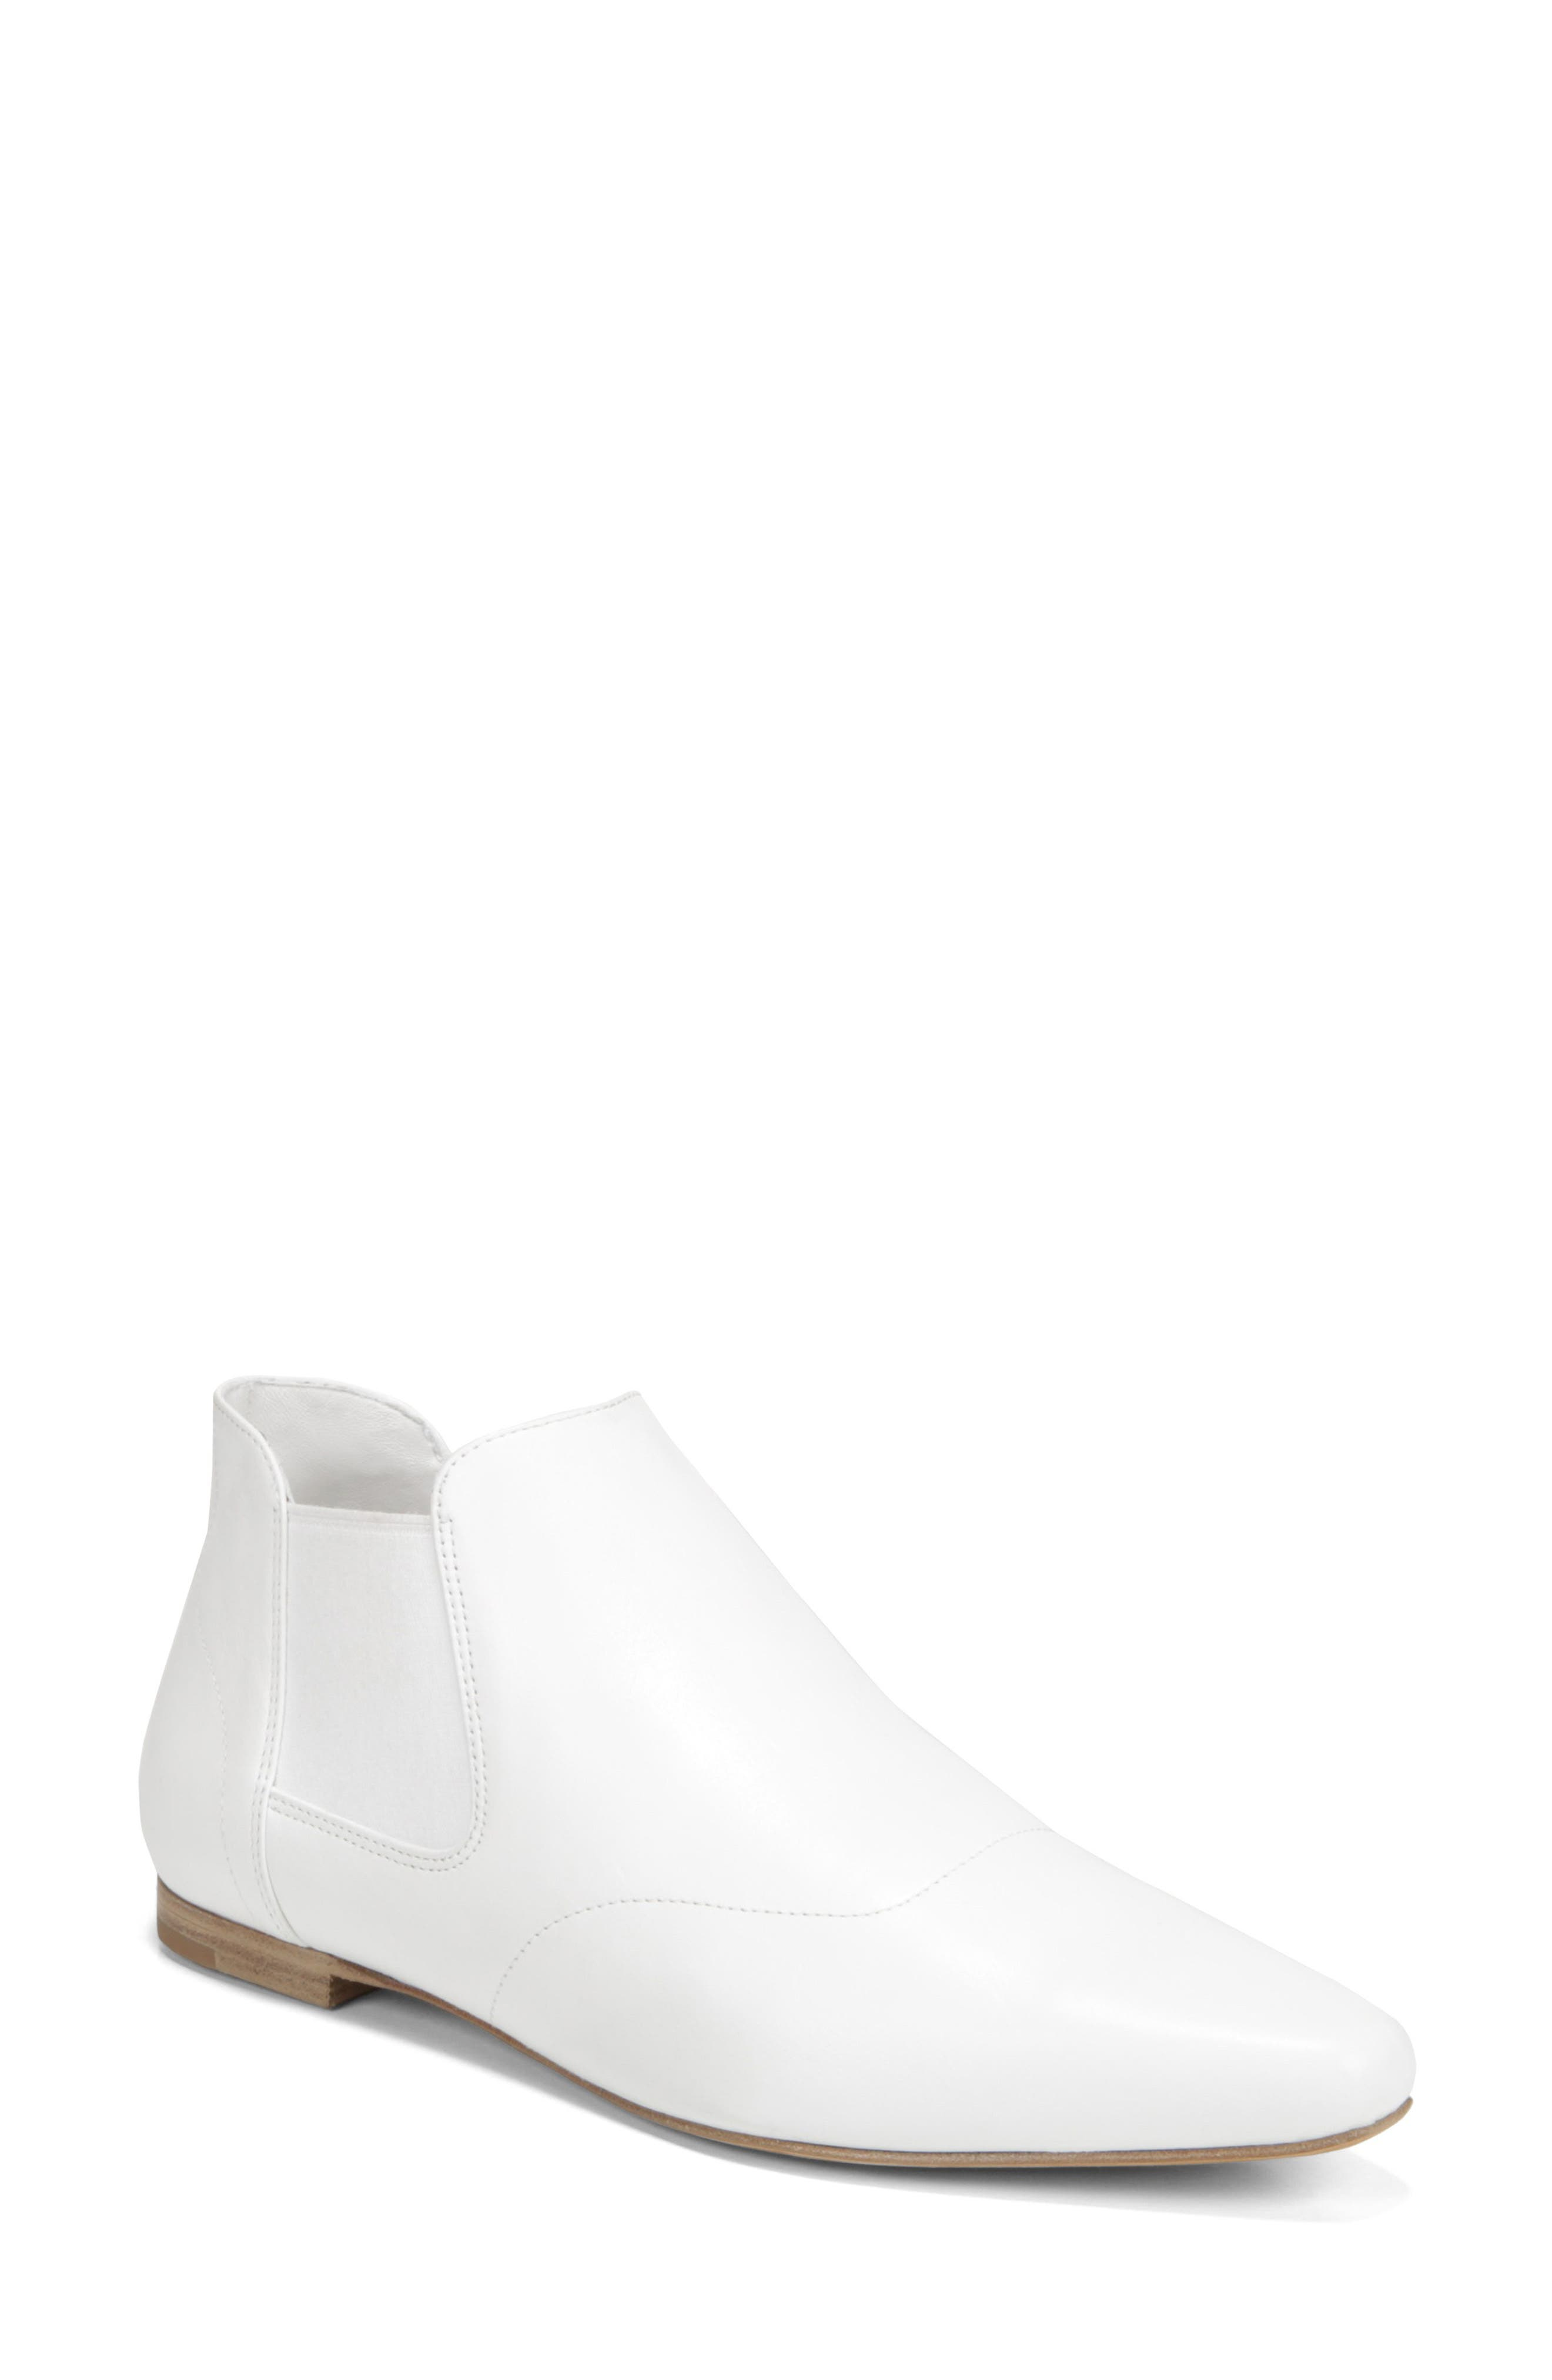 Vince Camrose Bootie- White